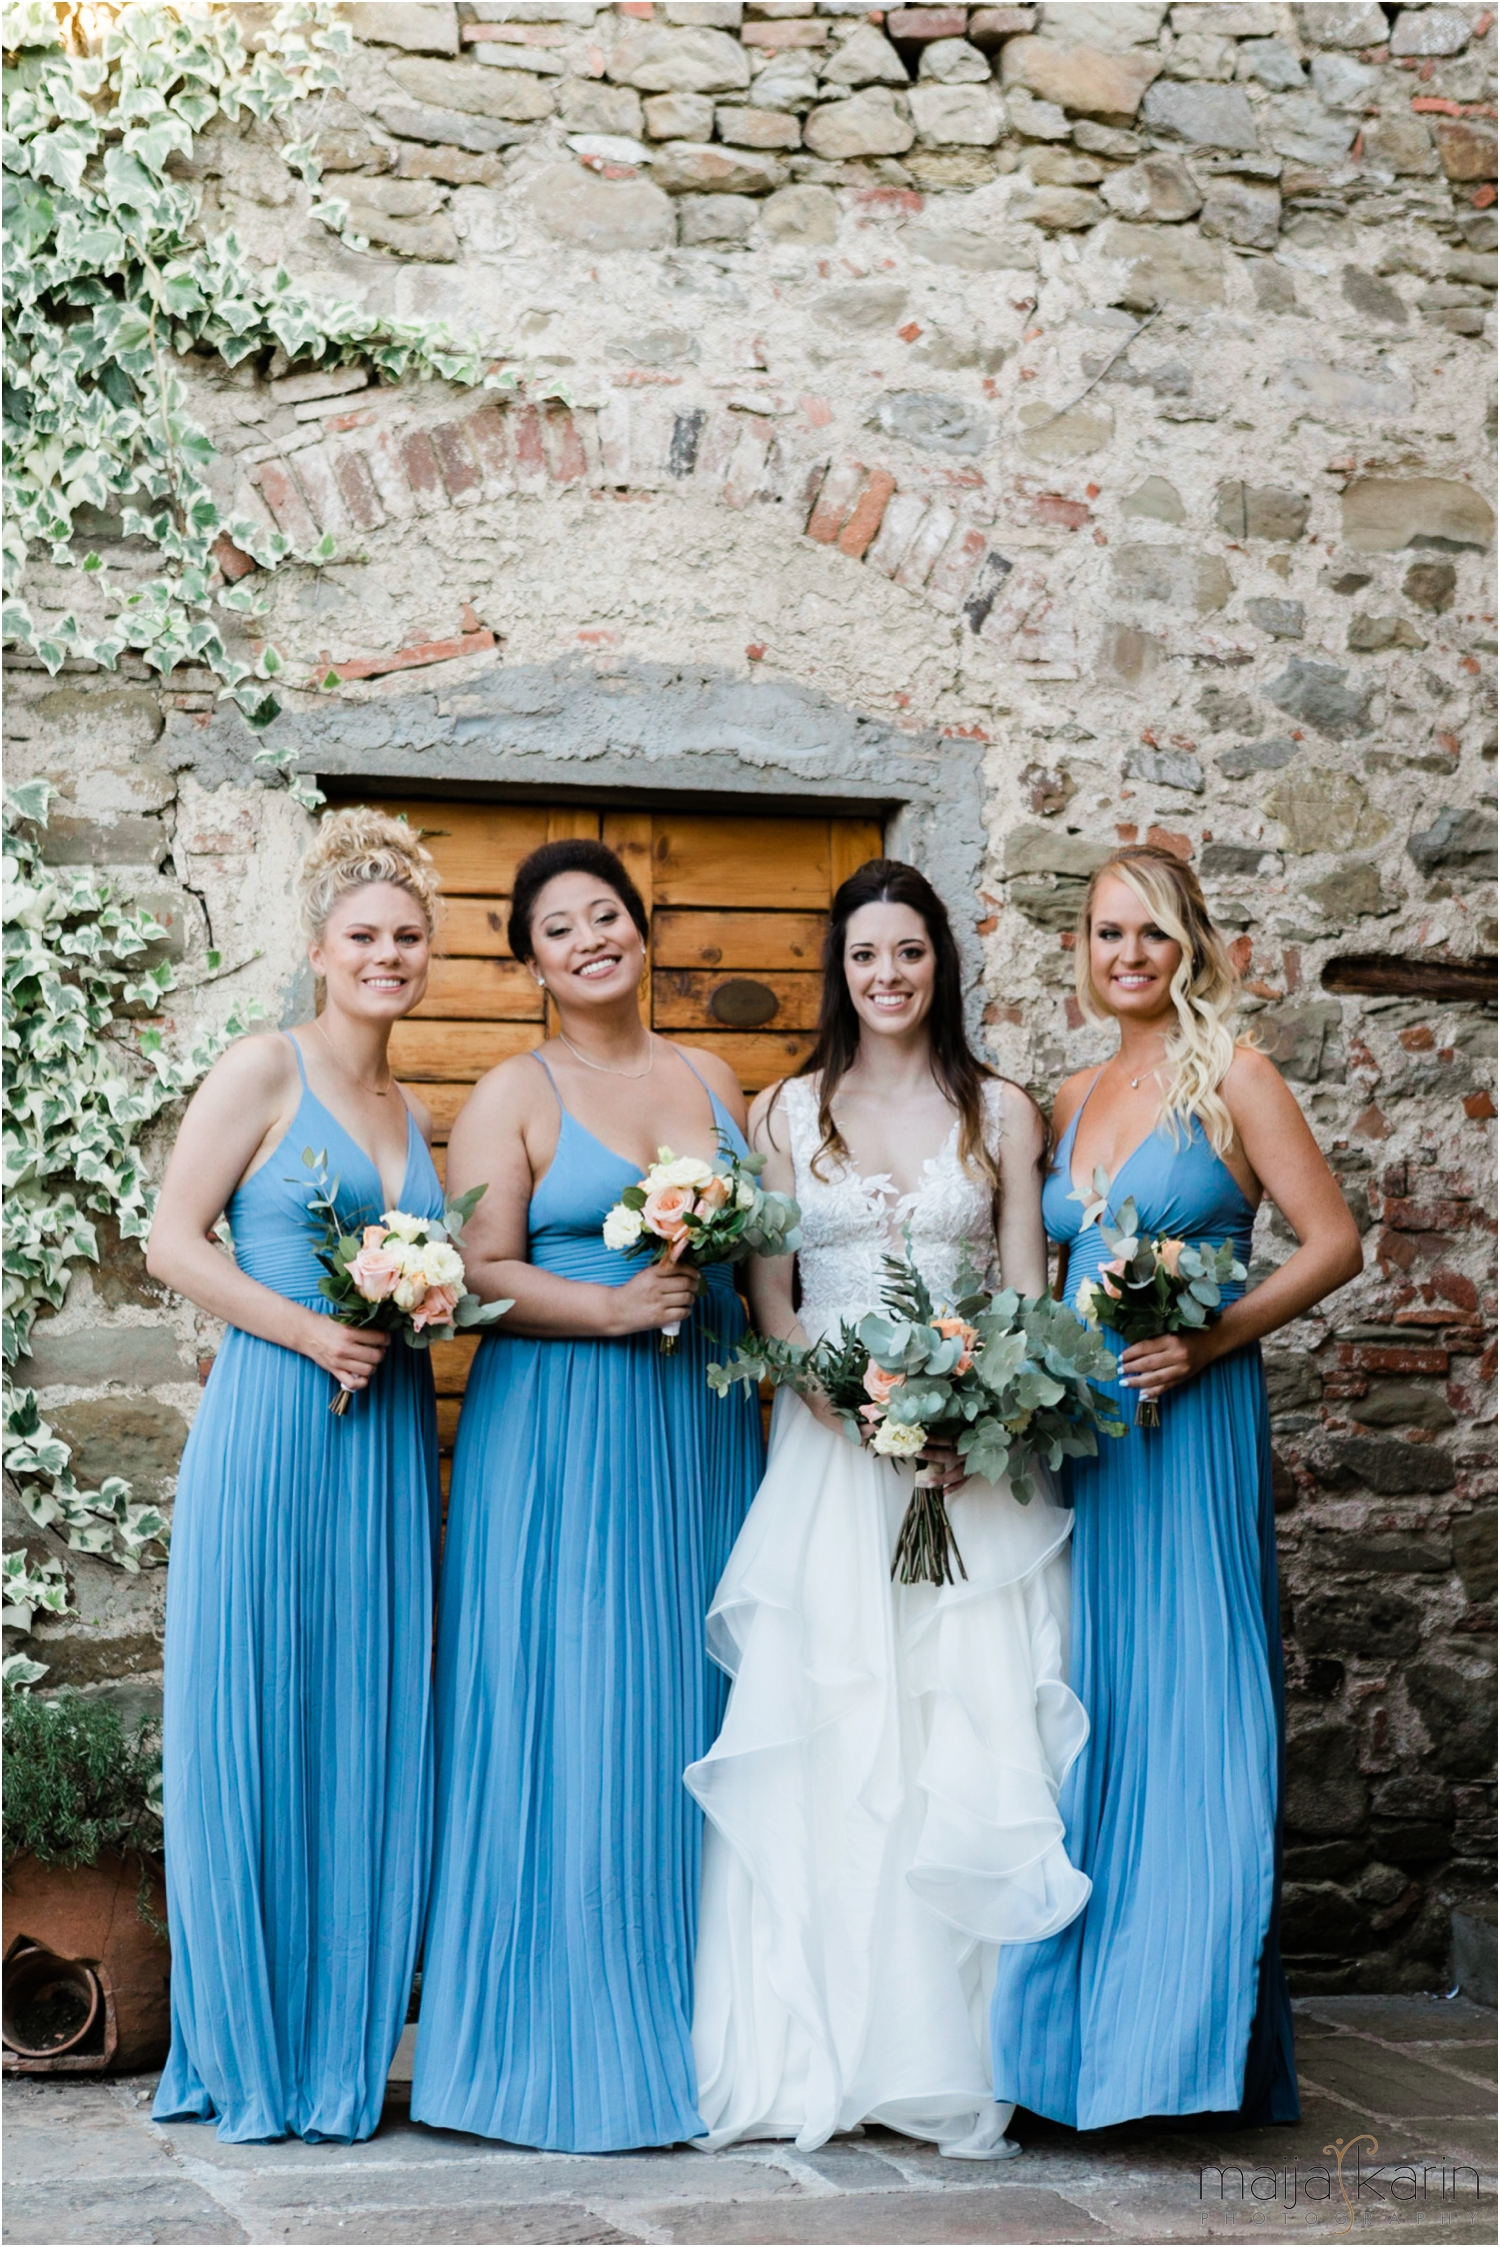 Castelvecchi-Tuscany-Wedding-Maija-Karin-Photography_0047.jpg